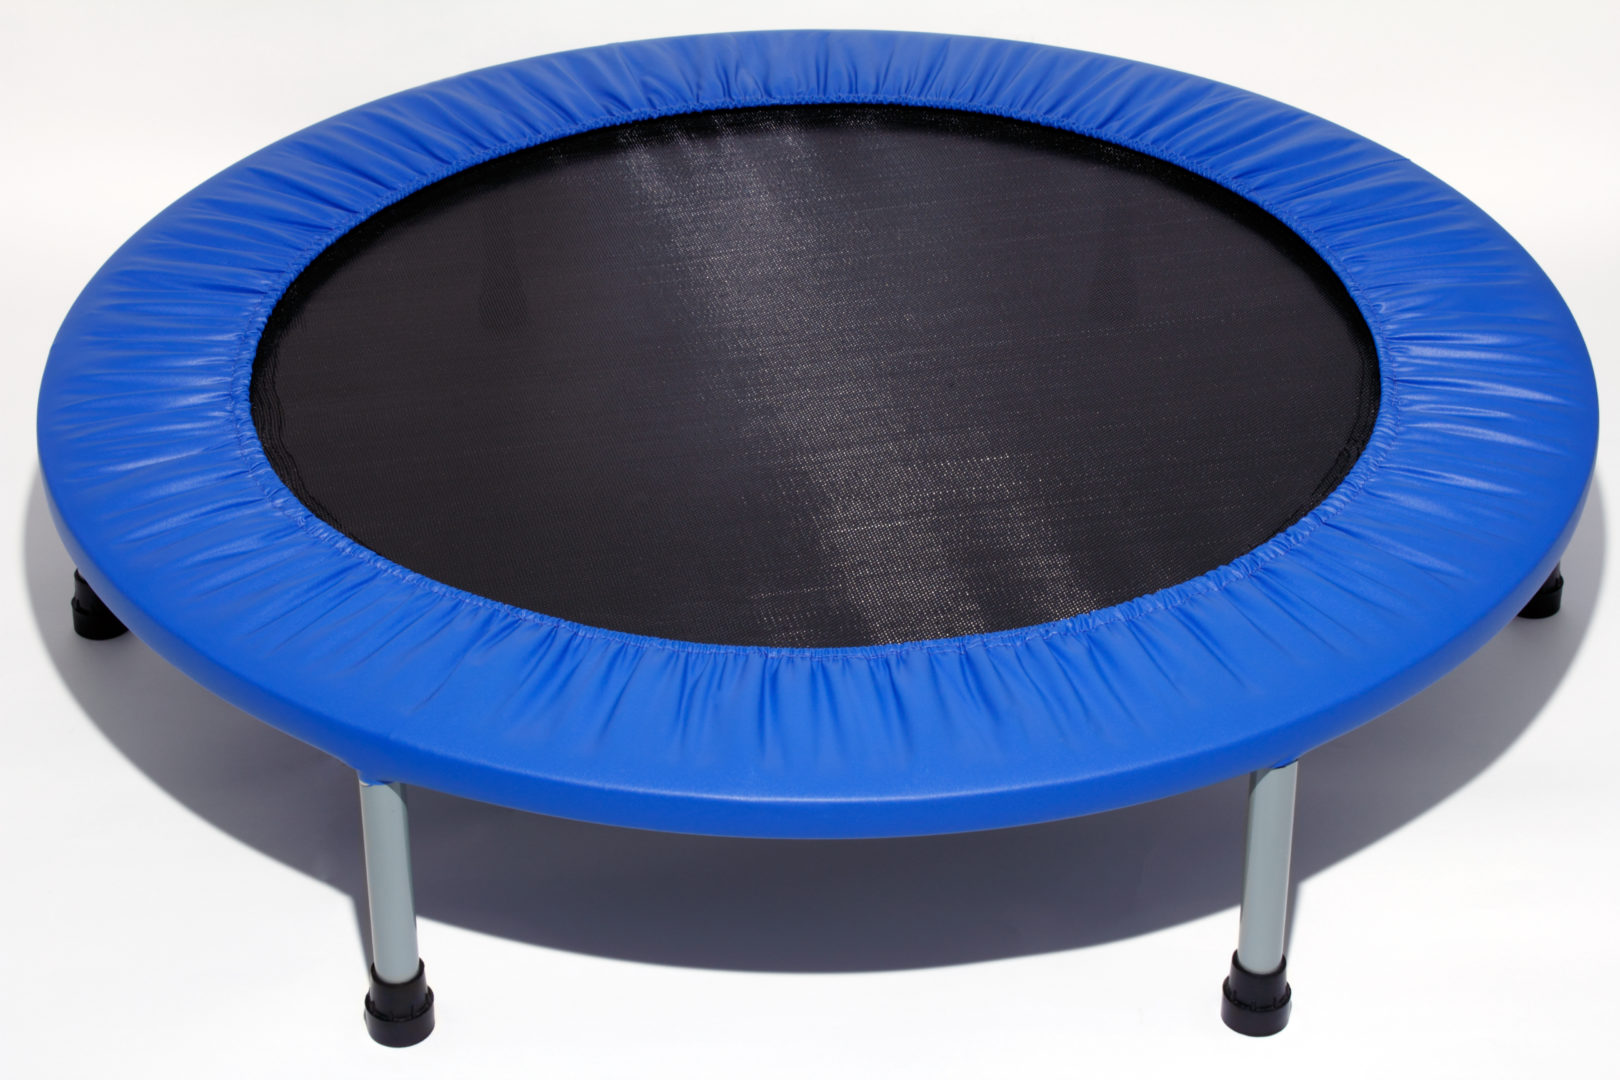 Differences Between a Rebounder and a Trampoline